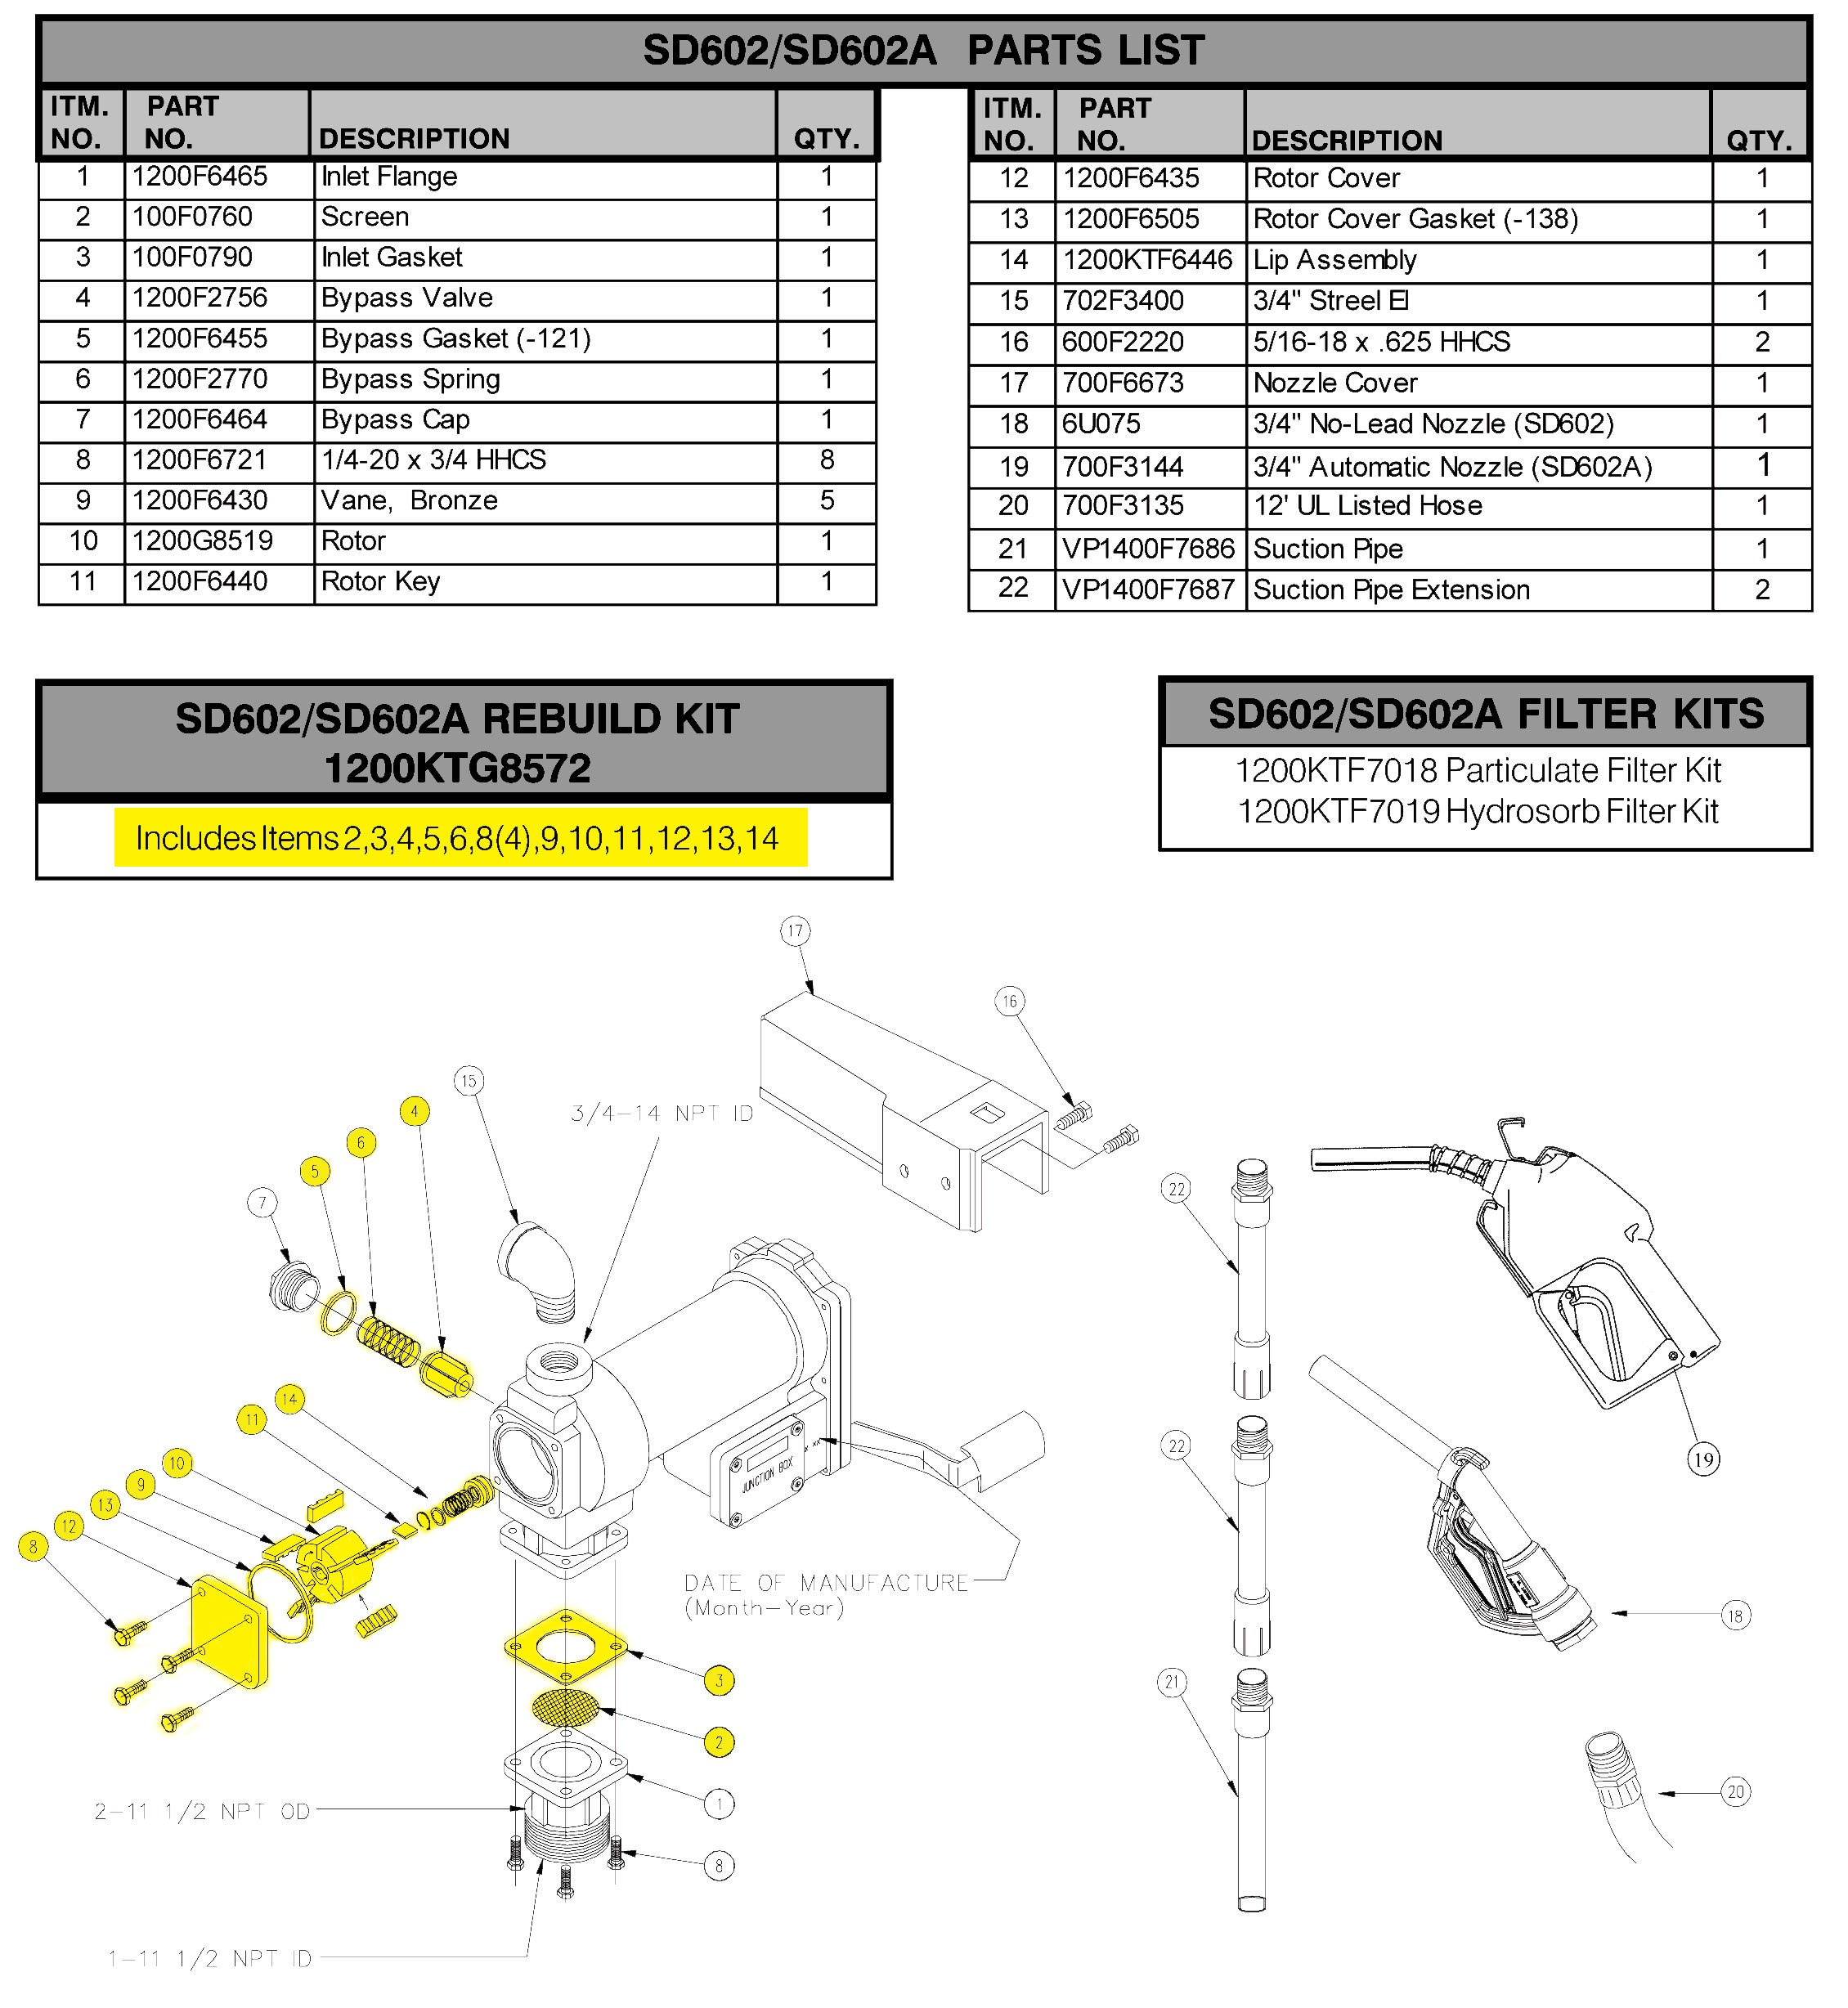 fill rite pump wiring diagram Collection-Fire Extinguisher Parts Diagram Fill Rite 1200ktg8572 Rebuild Kit Fire Extinguisher Parts Diagram Fill Rite 10-h